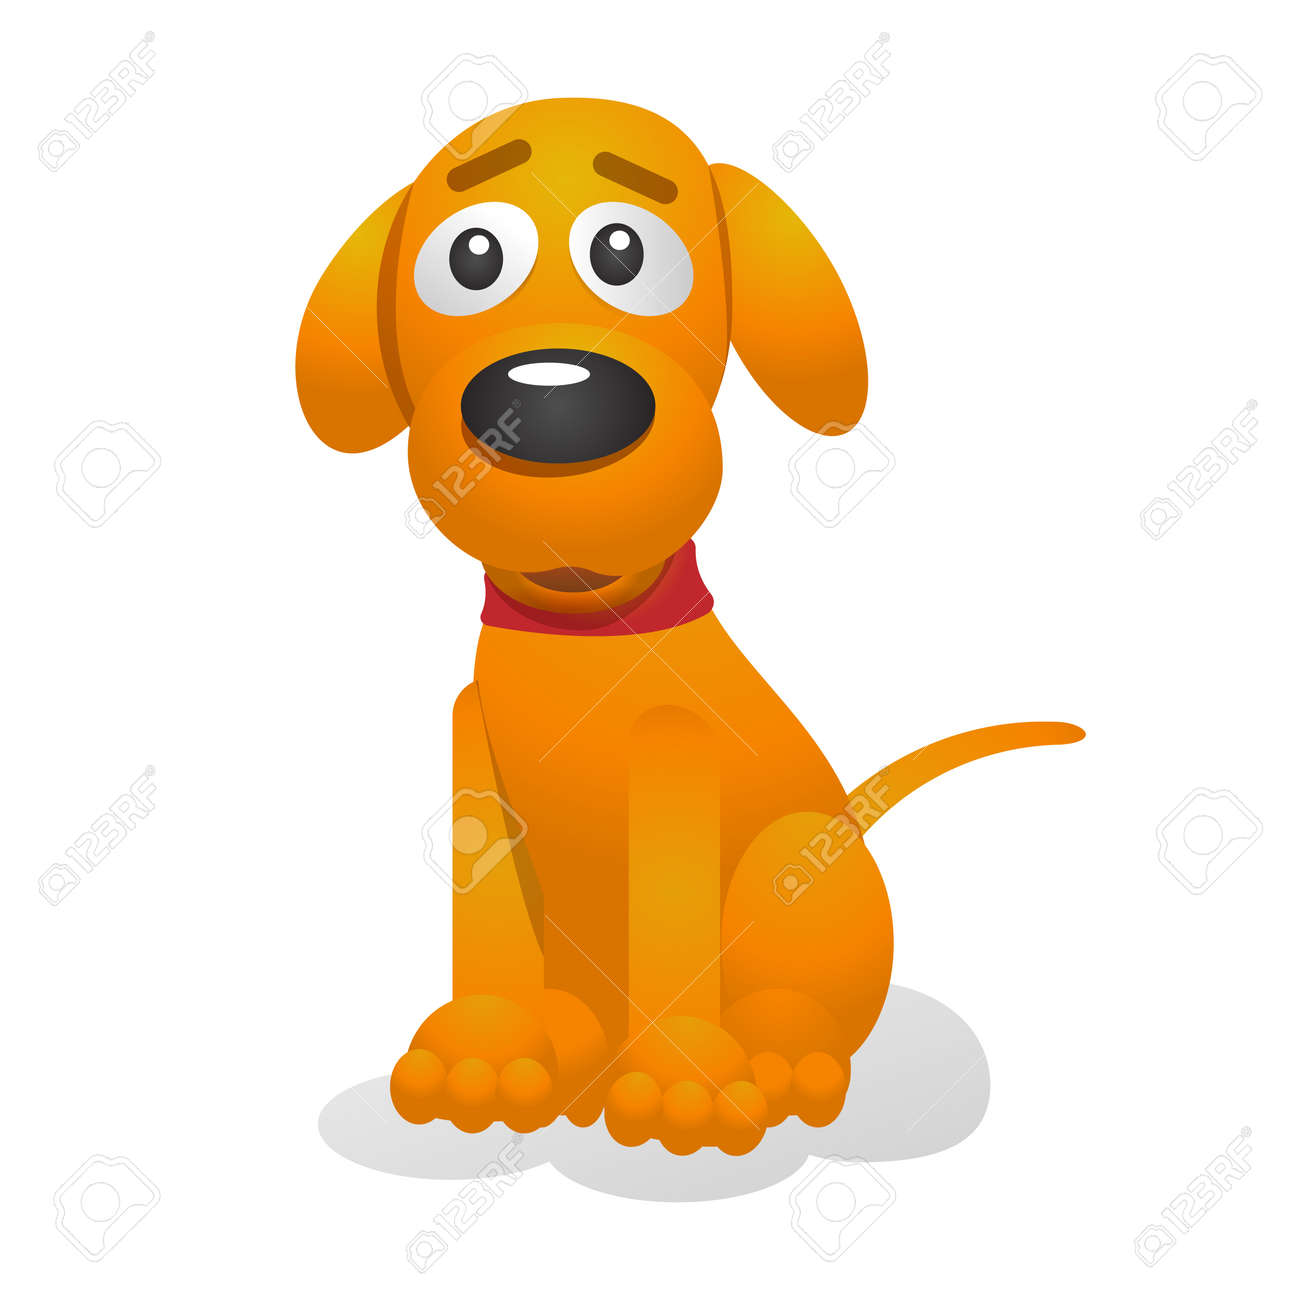 Cute puppy cartoon vector illustration. Yellow pup wearing a red collar sits. Isolated on white background. For web design and apps - 41034928